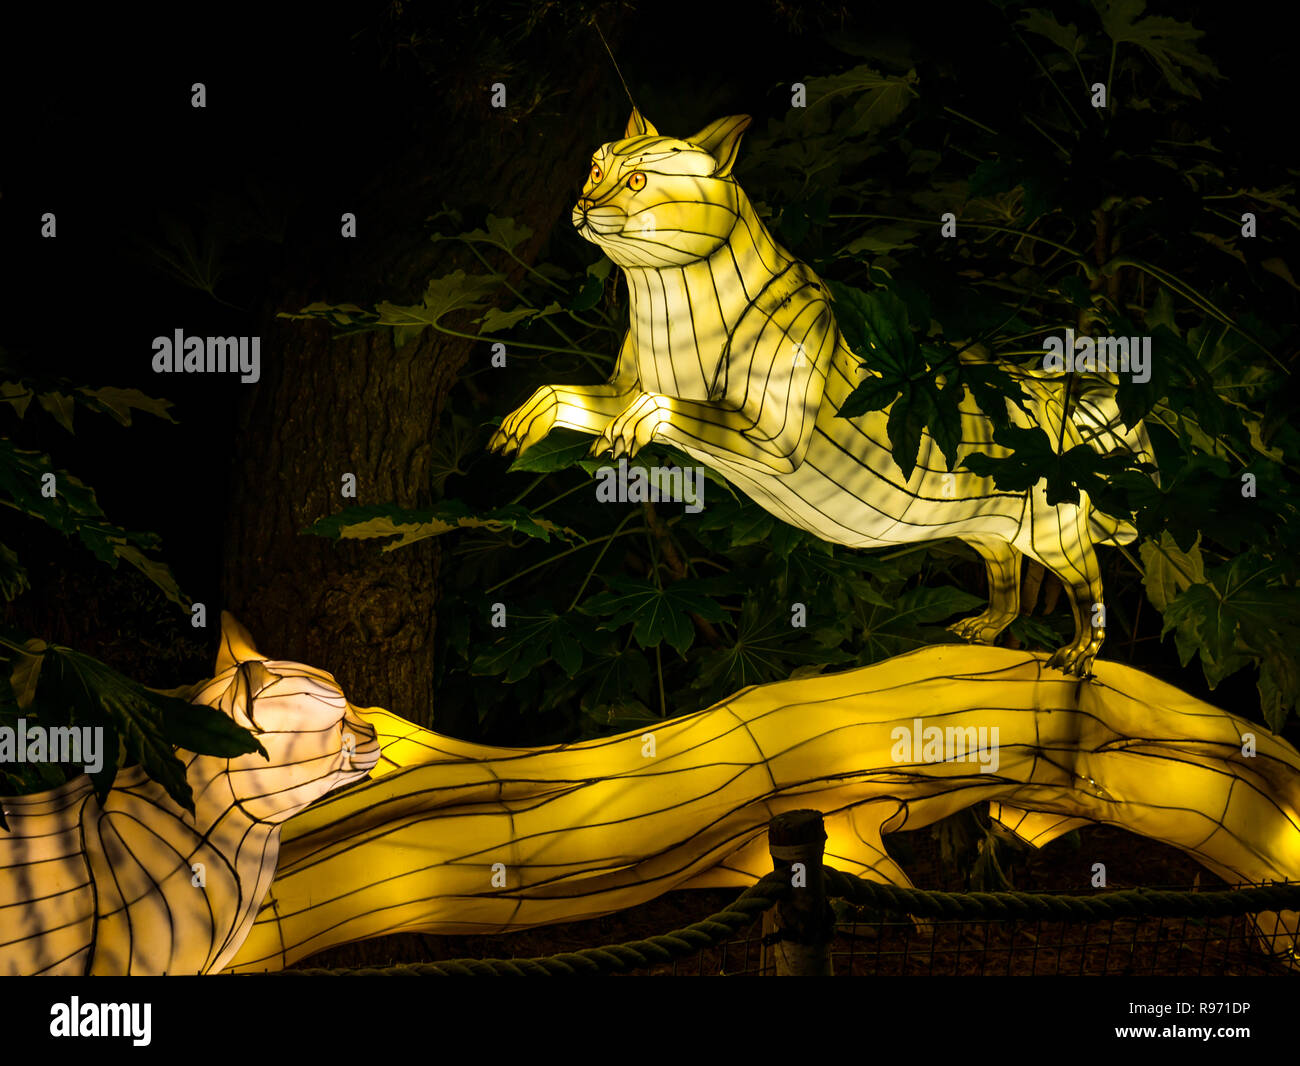 Edinburgh Zoo Scotland United Kingdom 20th December 2018 Great Lanterns Of China Display At The With Colourful Lantern Displays